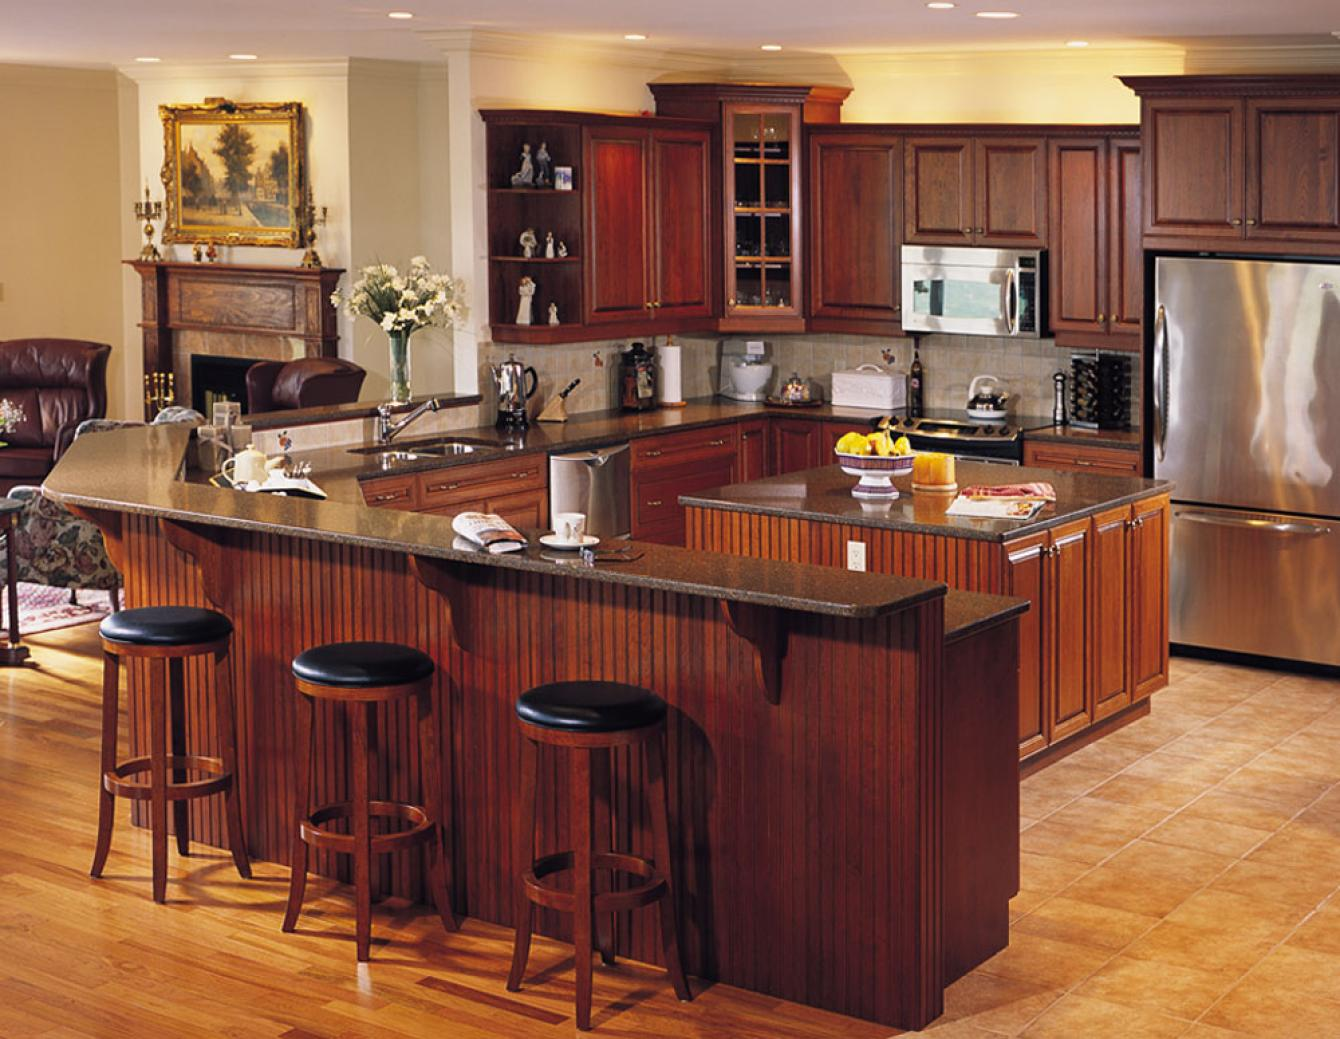 Kitchen design gallery triangle kitchen for Gallery kitchens kitchen design